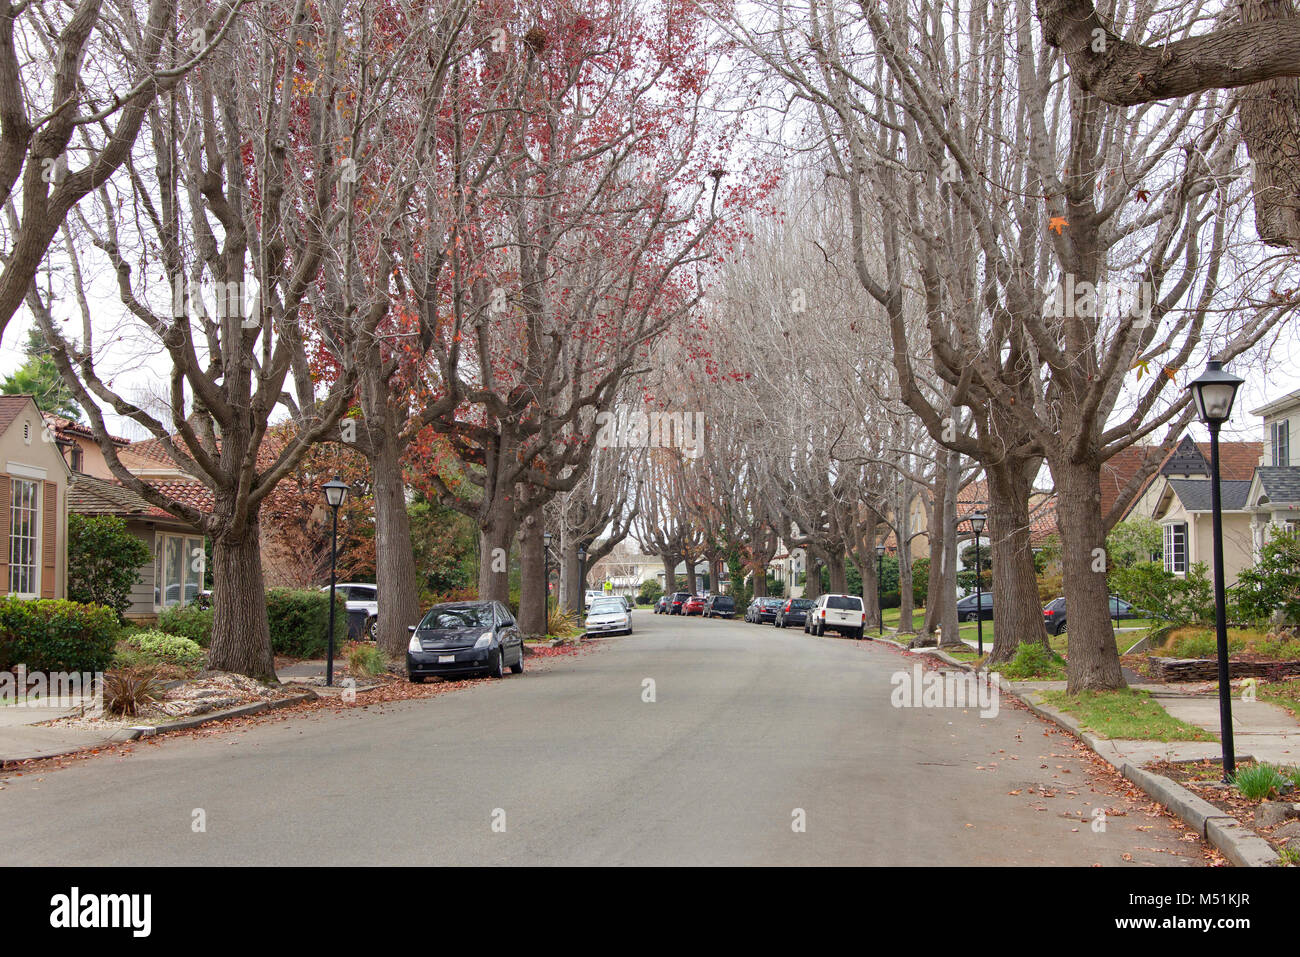 Tall Liquid amber, commonly called sweet gum tree, or American Sweet gum tree, lining an older neighborhood in Northern - Stock Image